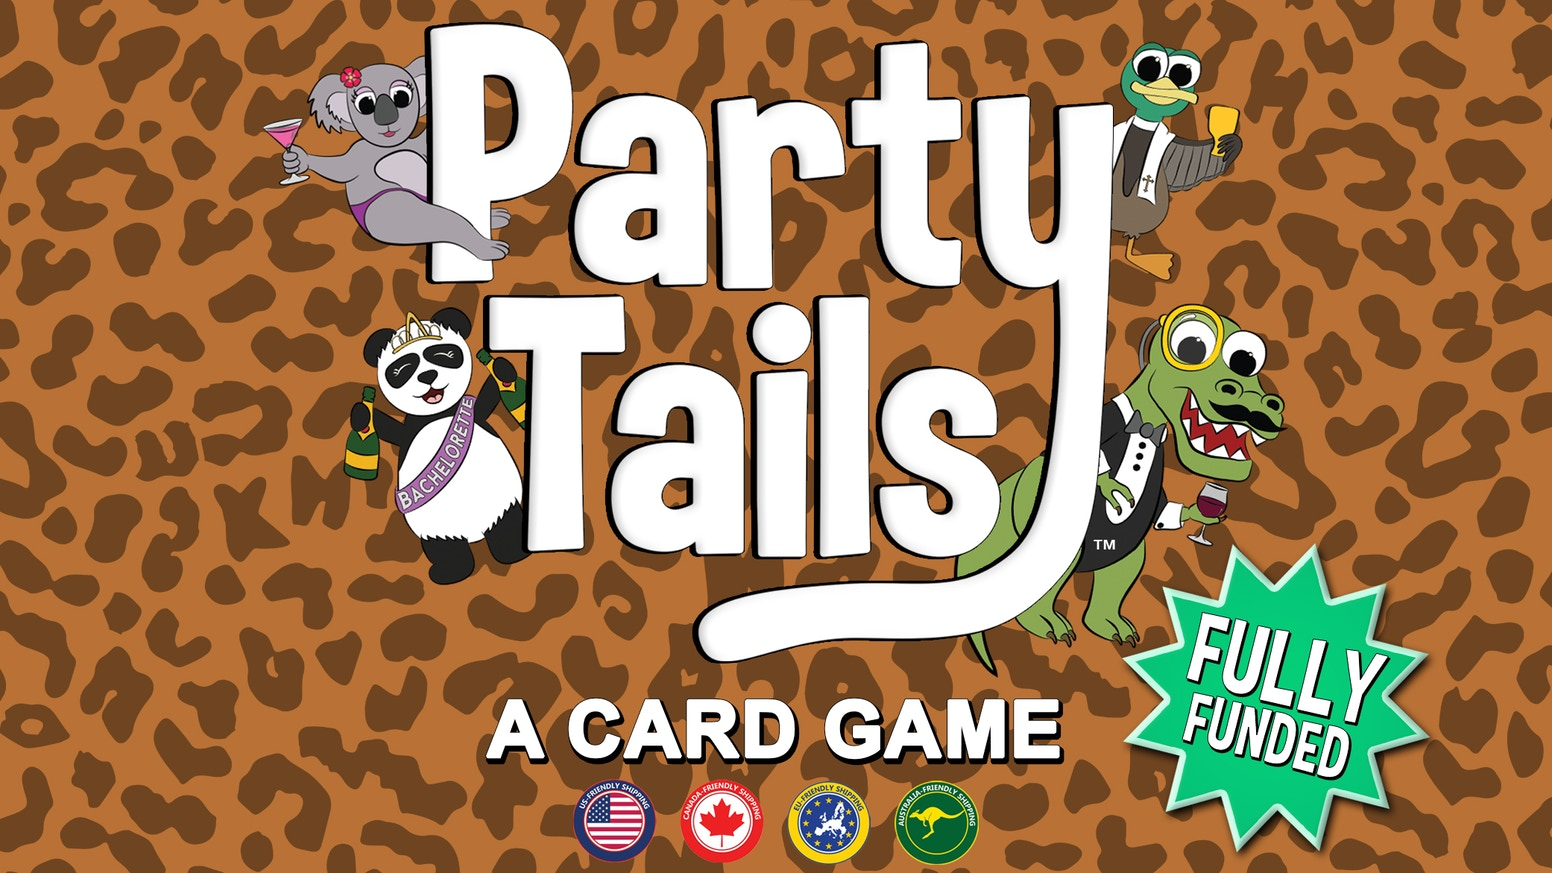 Party your tail off with this wild card game all about animals, drinking, and animals drinking - no drinking required!